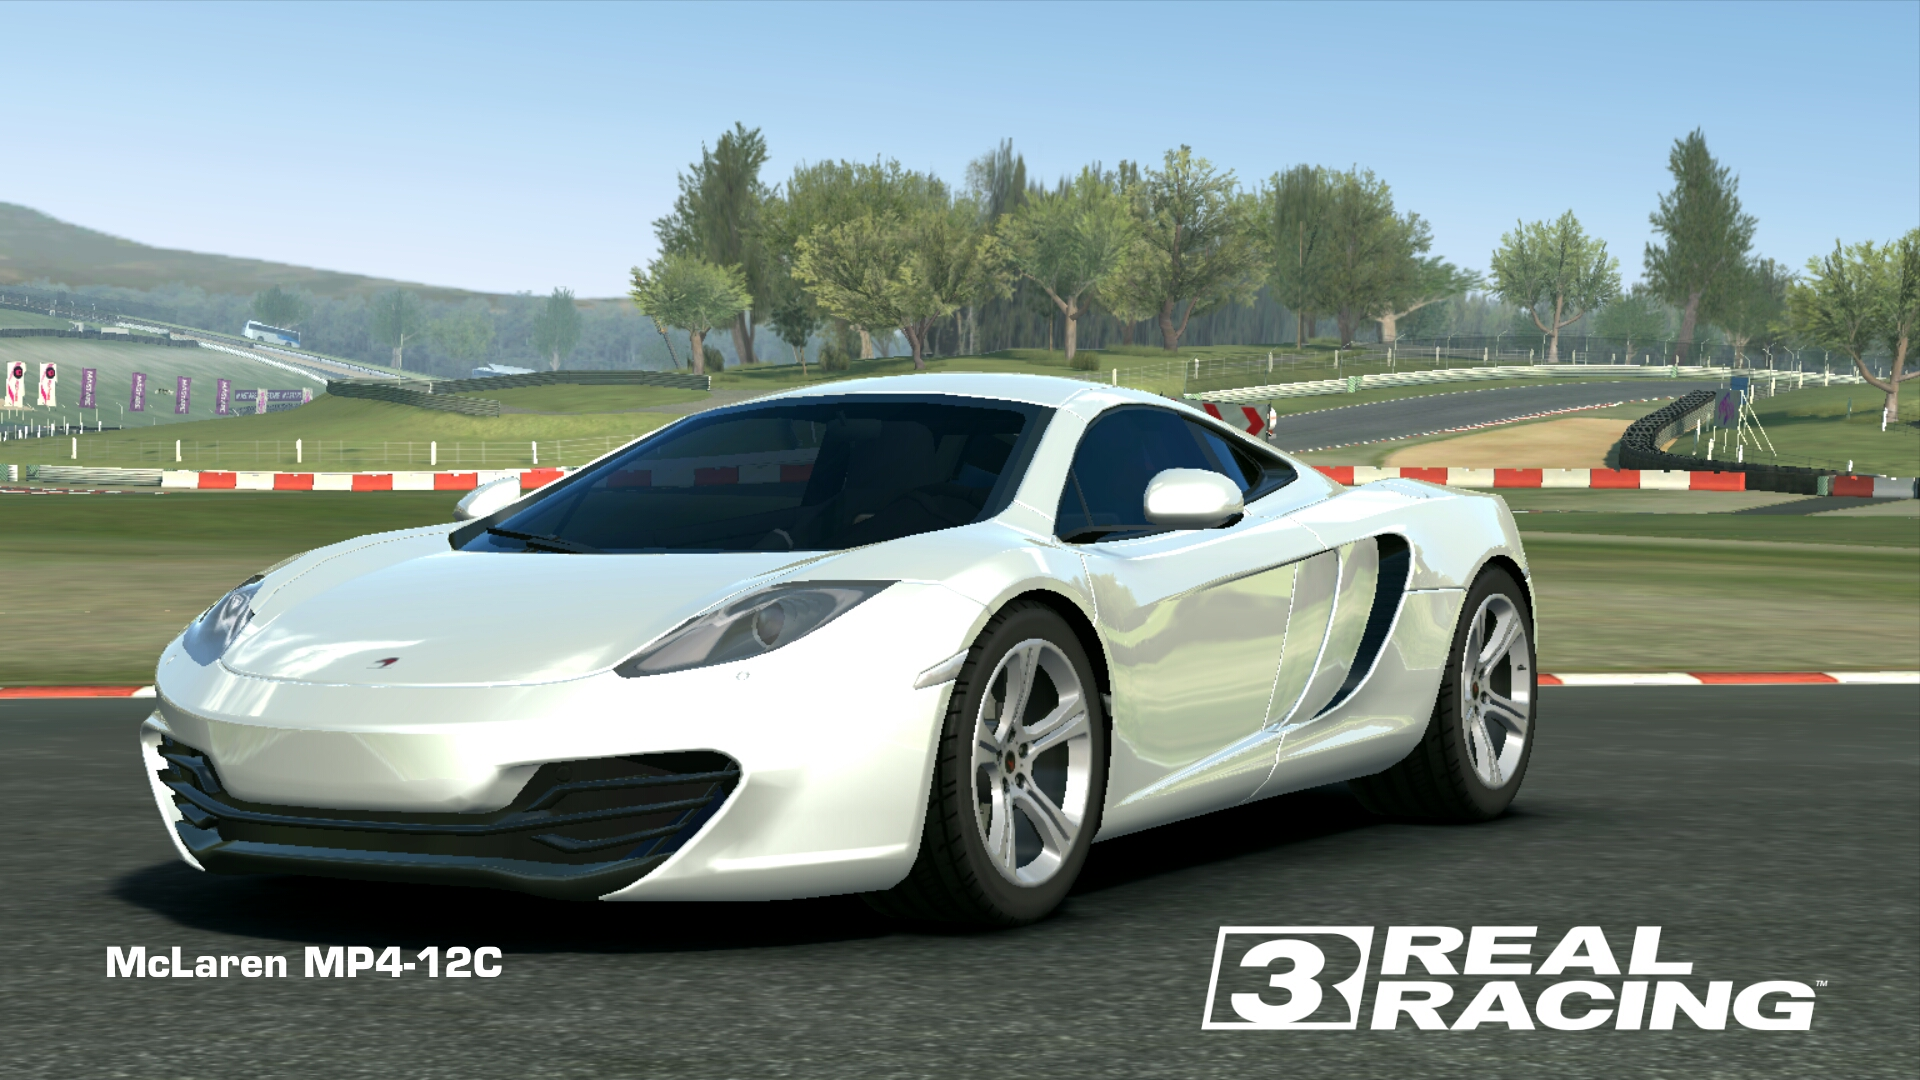 Showcase McLaren MP4-12C